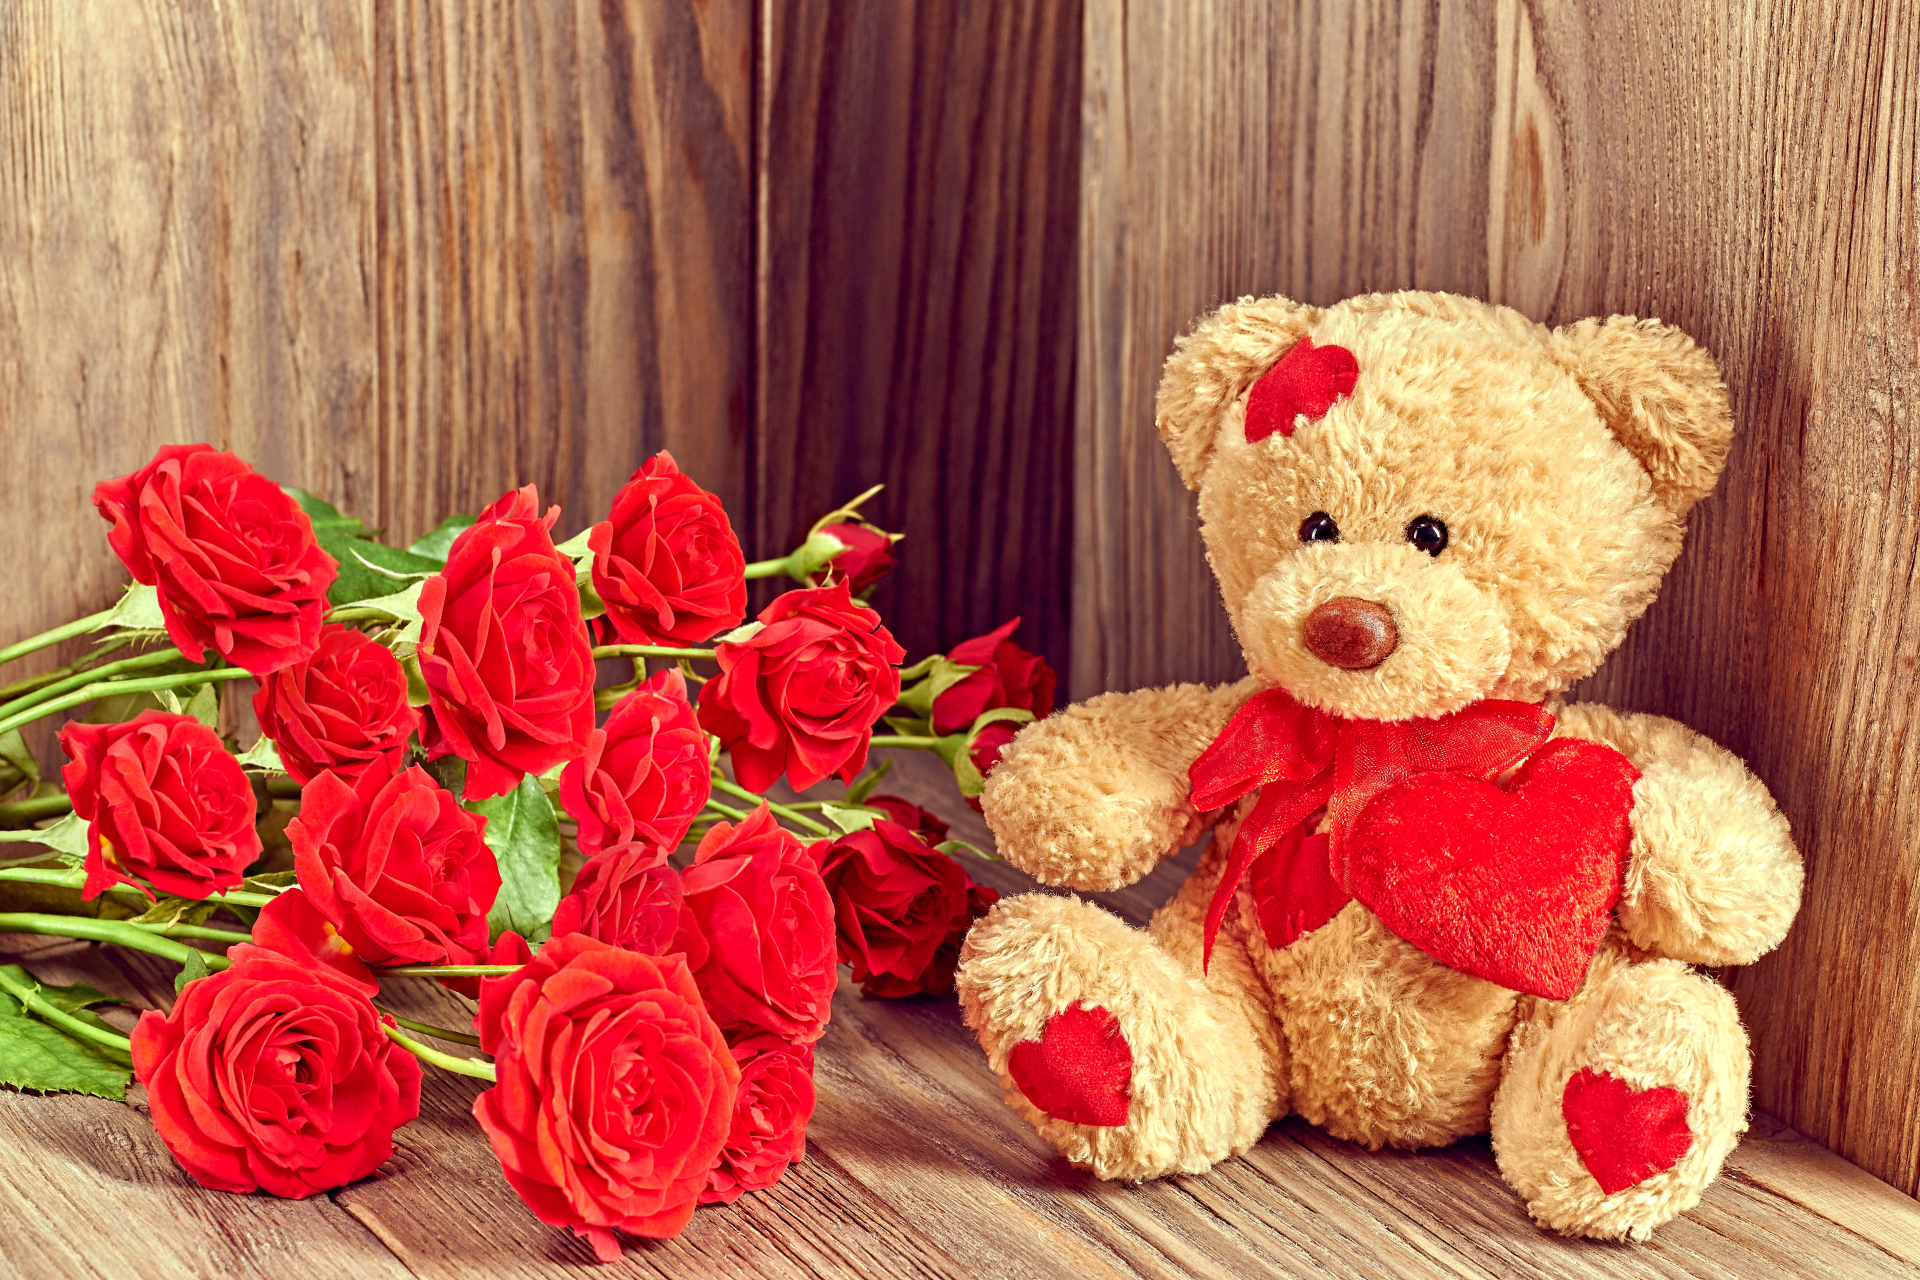 Red Roses And Cute Teddy Bear Picture Wallpaper Hd